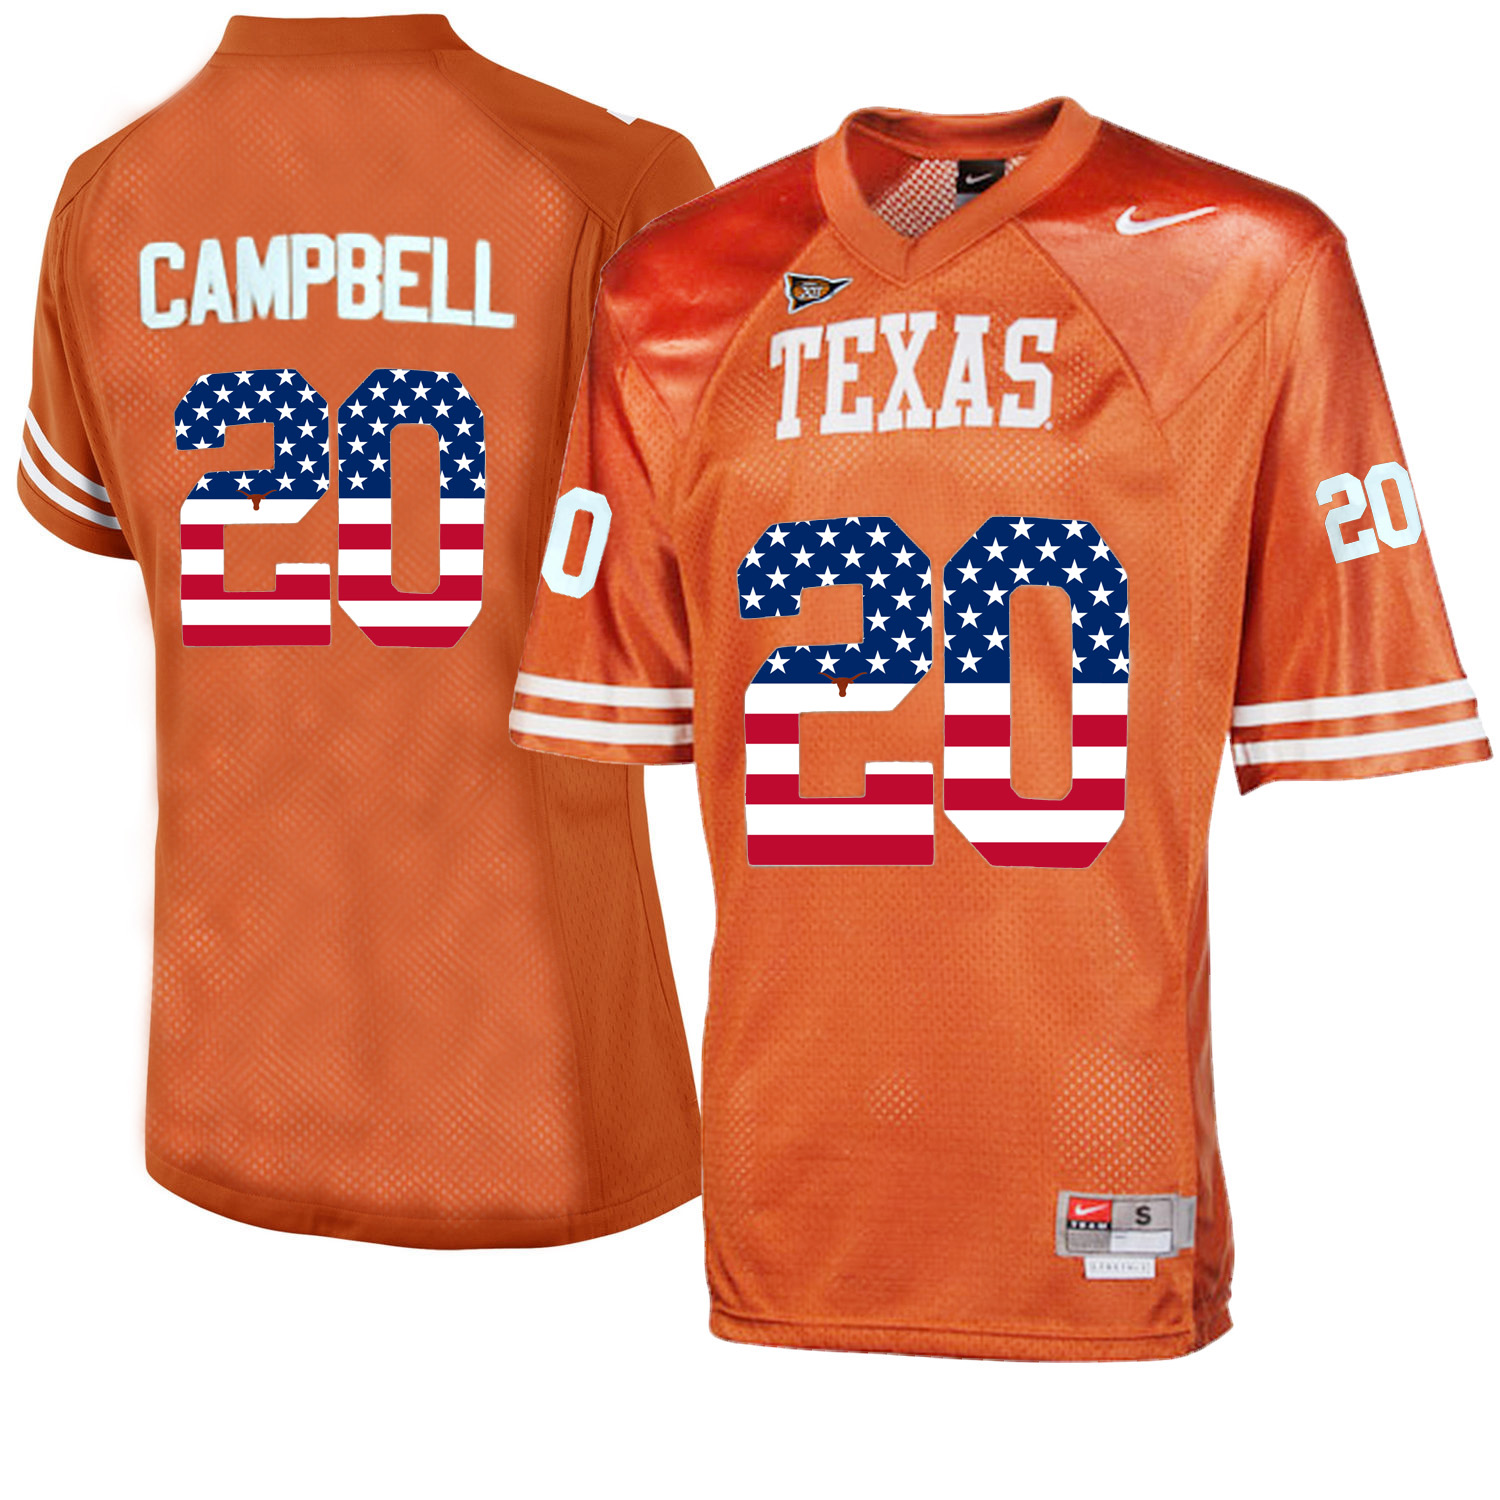 Texas Longhorns 20 Earl Campbell Orange College Football Throwback Jersey